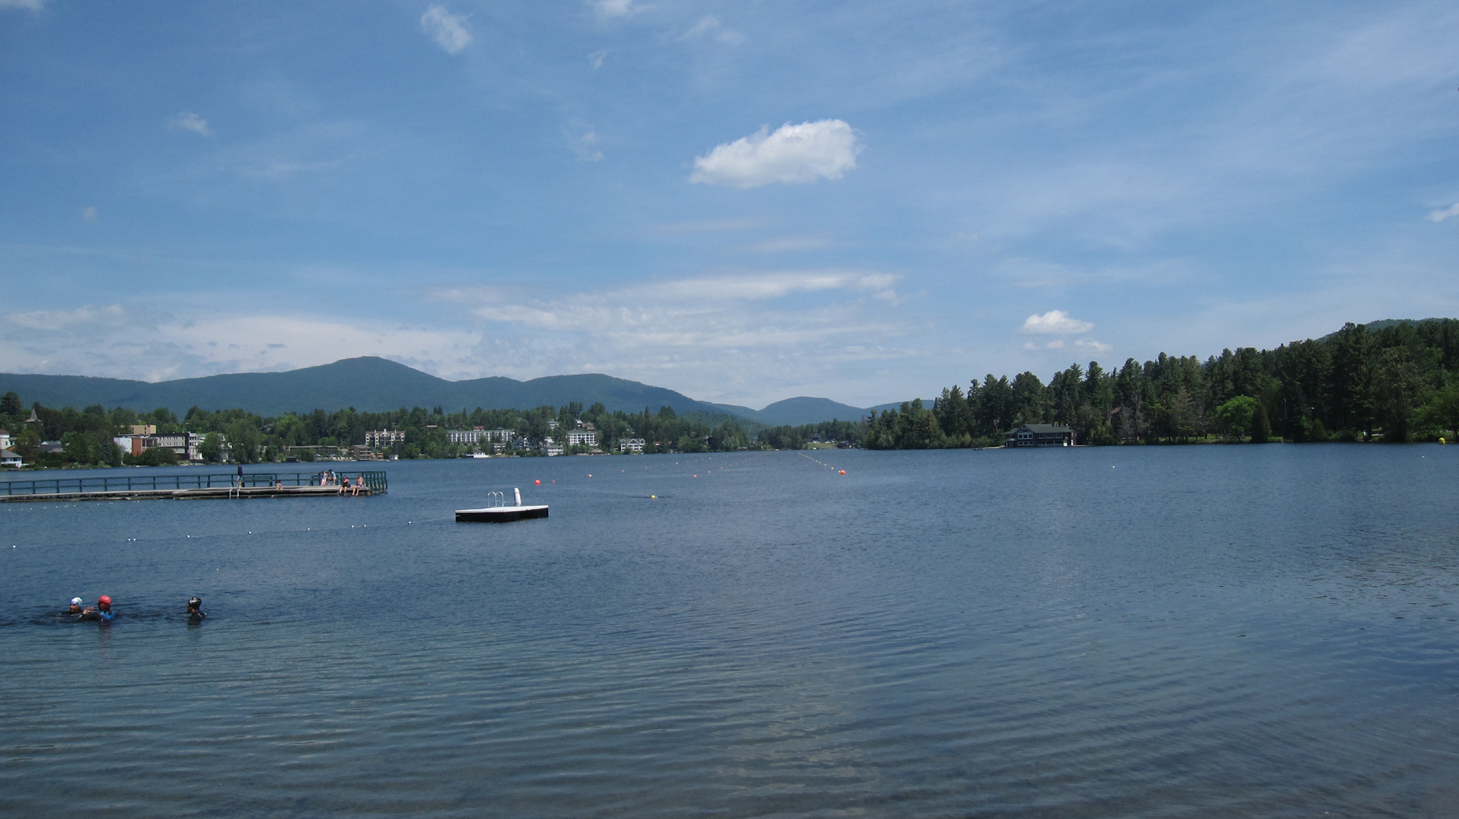 Mirror Lake in the Village of Lake Placid, New York